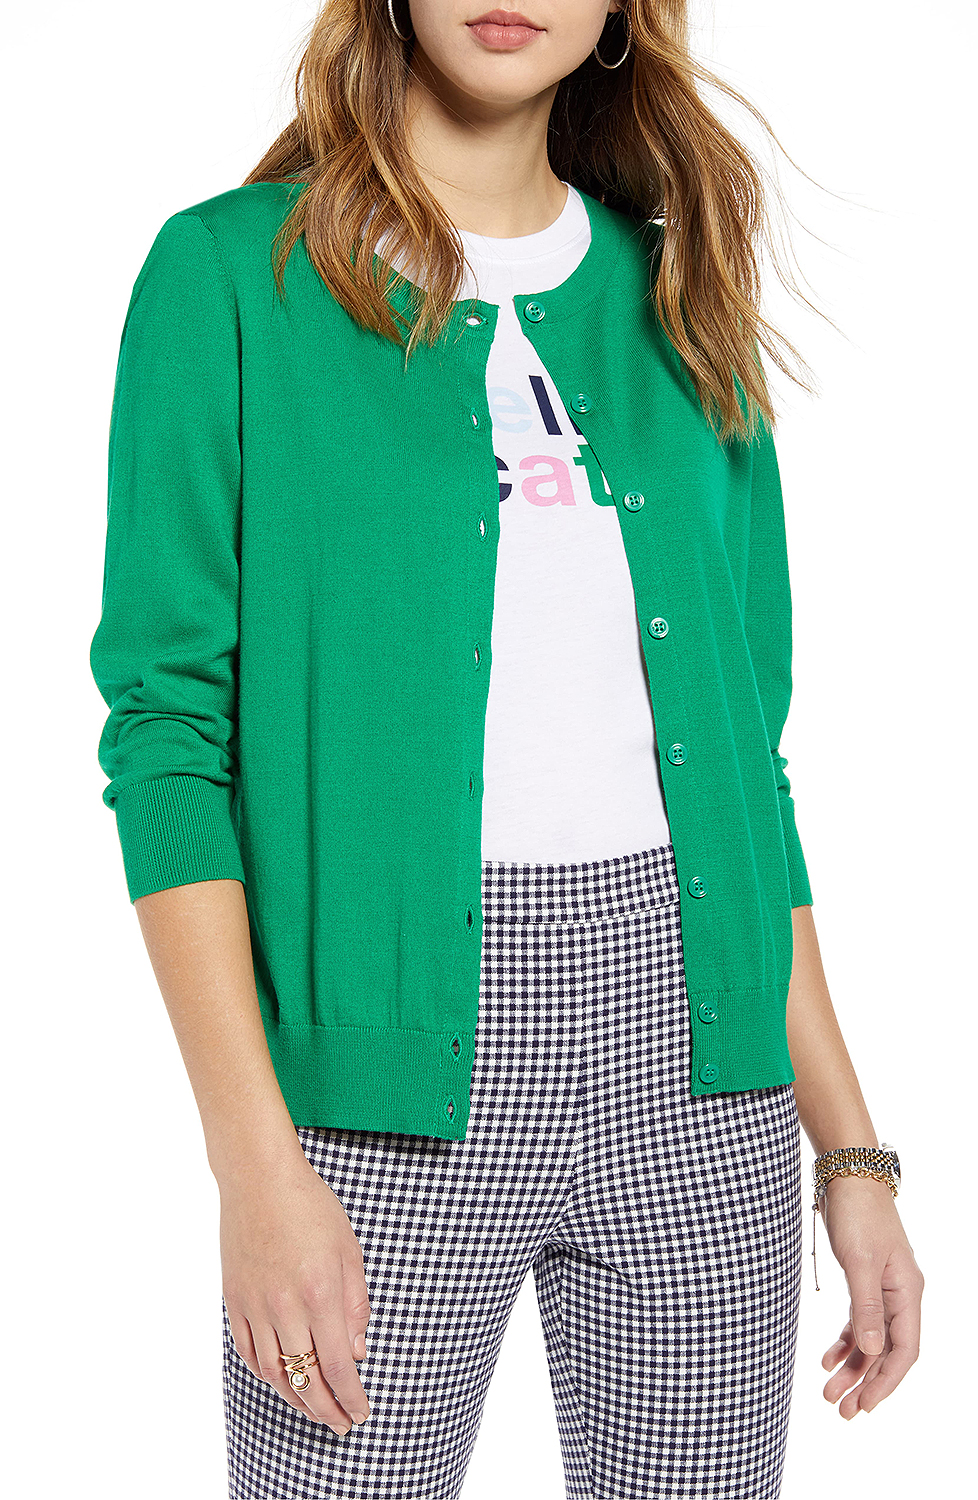 green cardigan from nordstrom